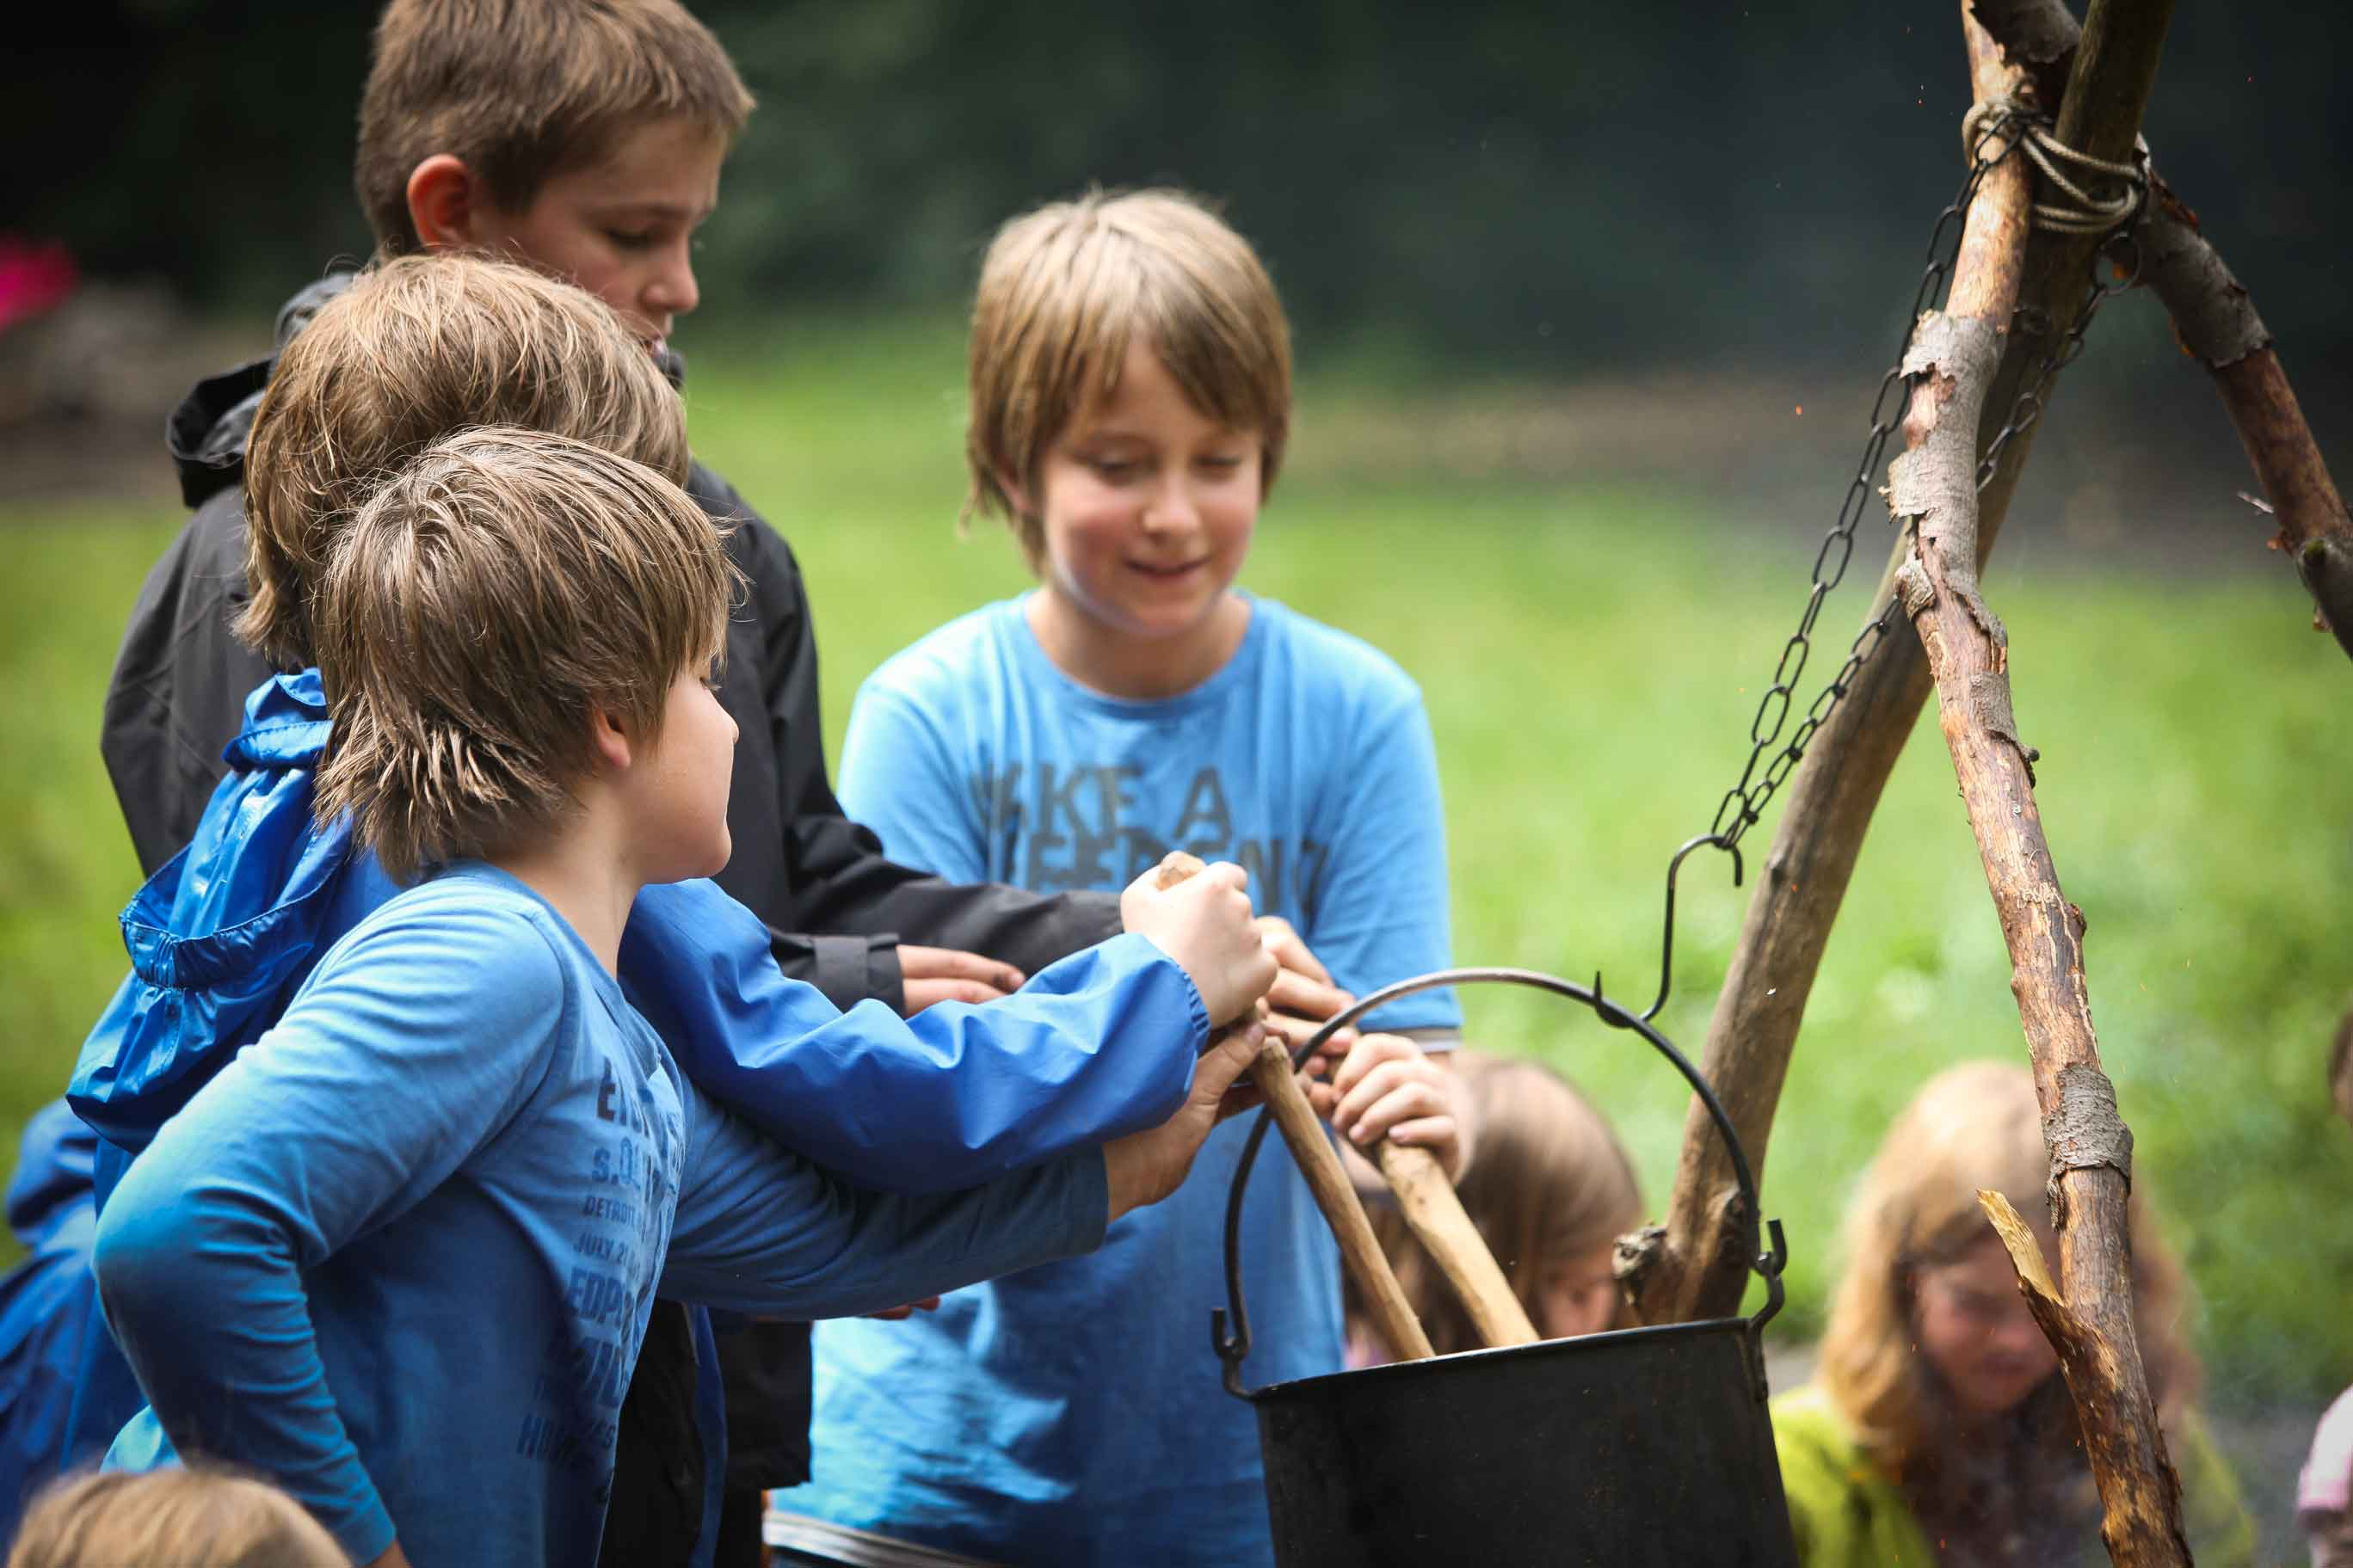 Survival Kurs für Kinder